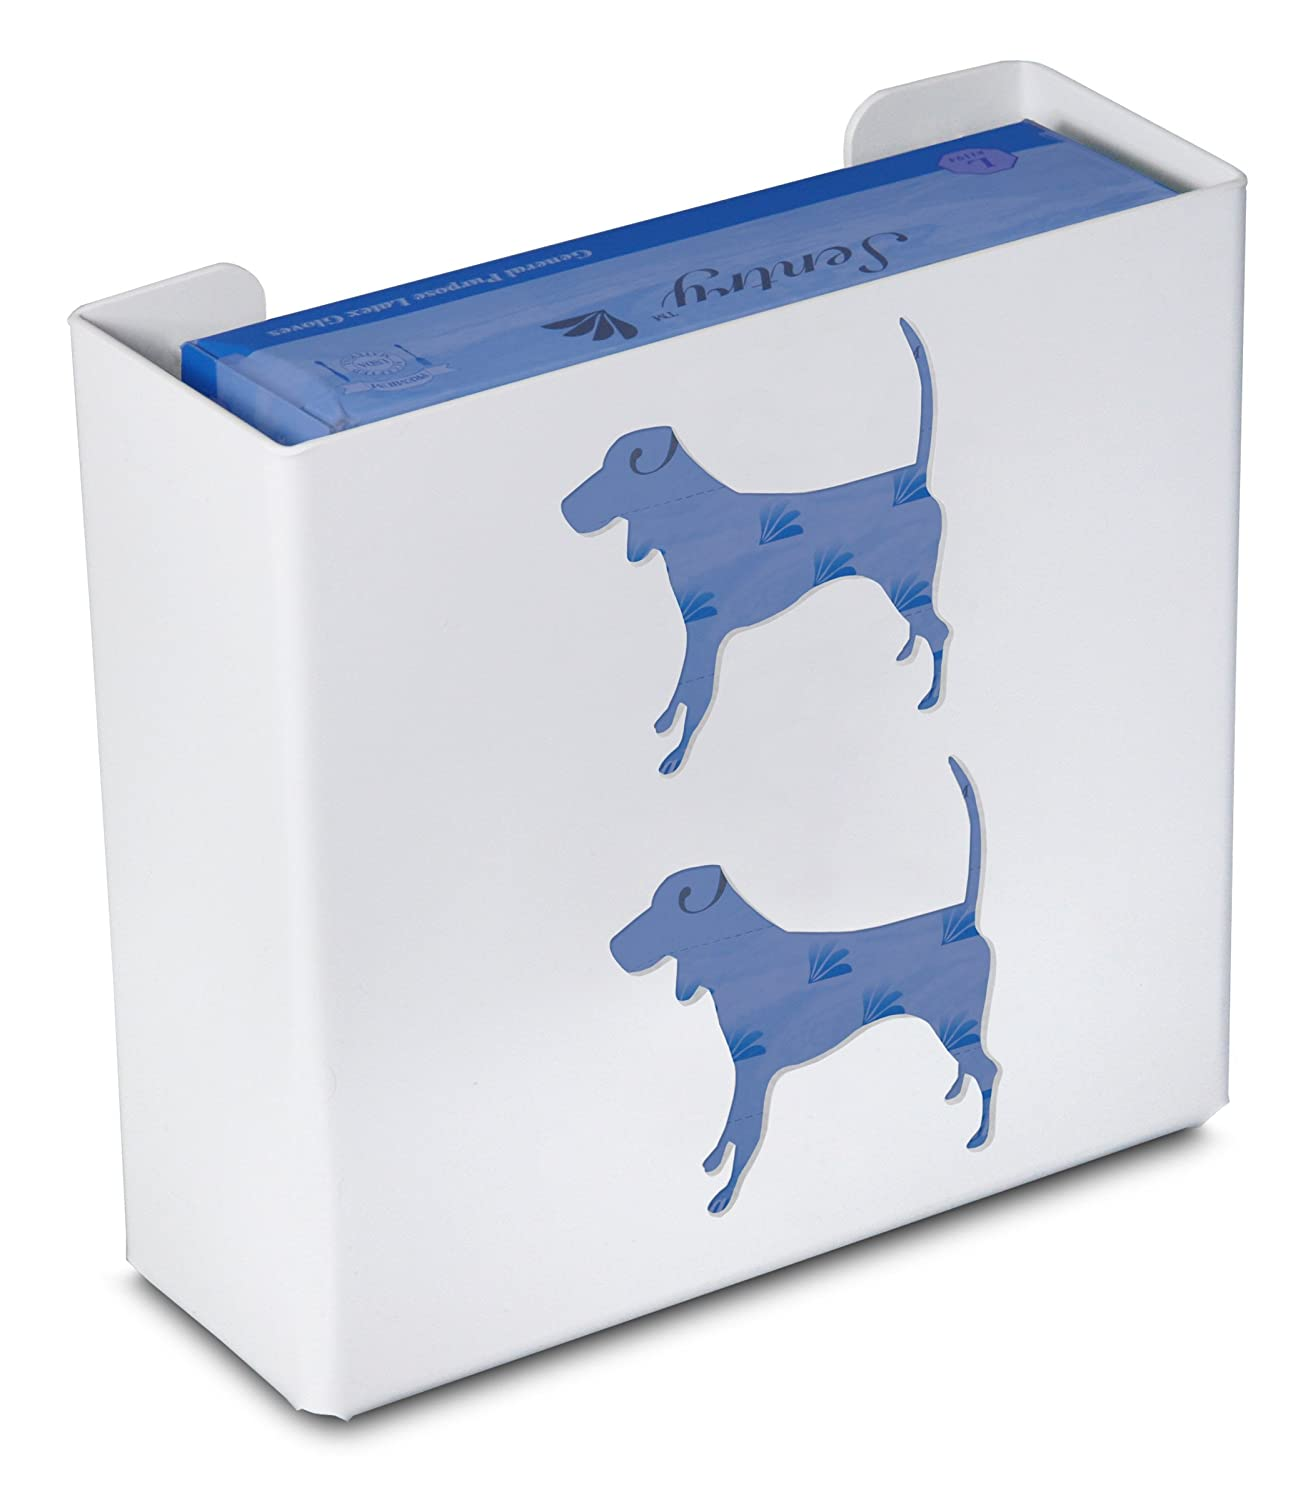 TrippNT 50771 Priced Right Double Glove Box Holder with Dog, 11' Width x 10' Height x 4' Depth 11 Width x 10 Height x 4 Depth